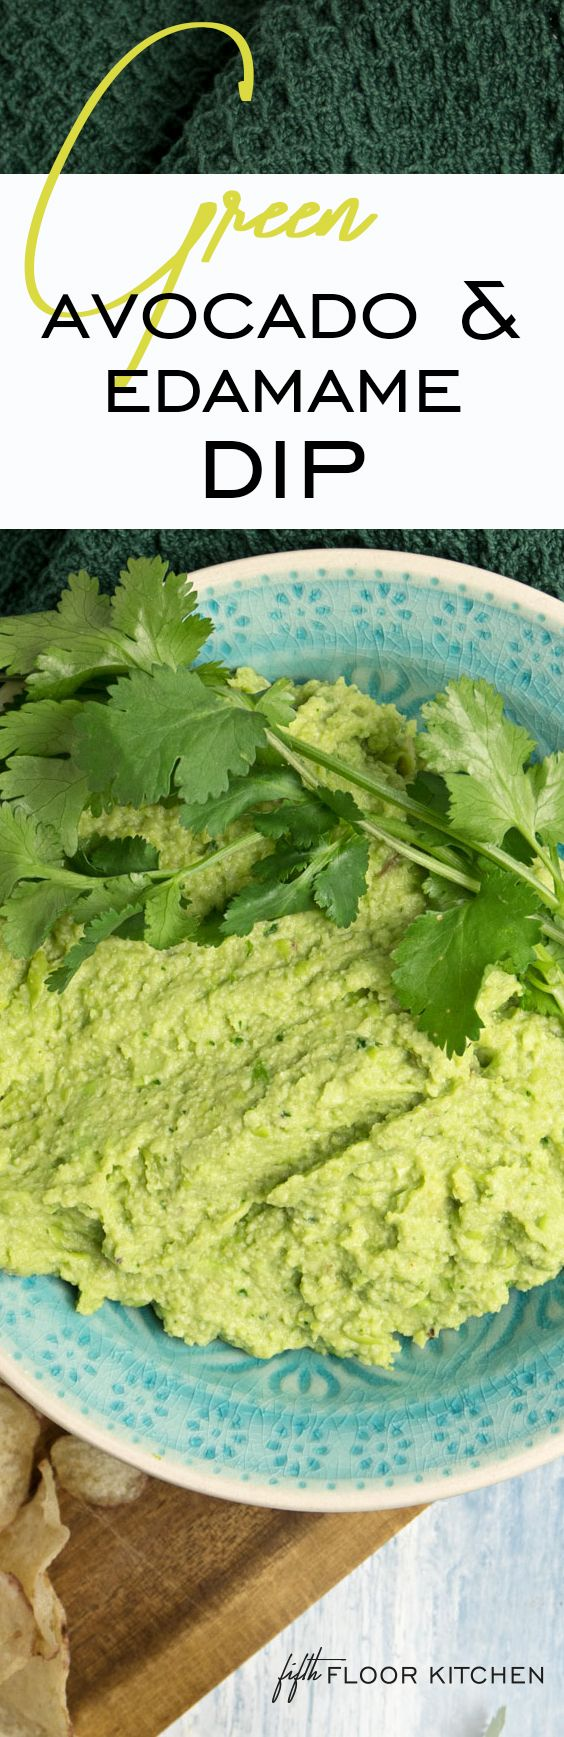 This recipe is calling all guacamole and hummus lovers! Here's the green warrior dip with avocado and edamame